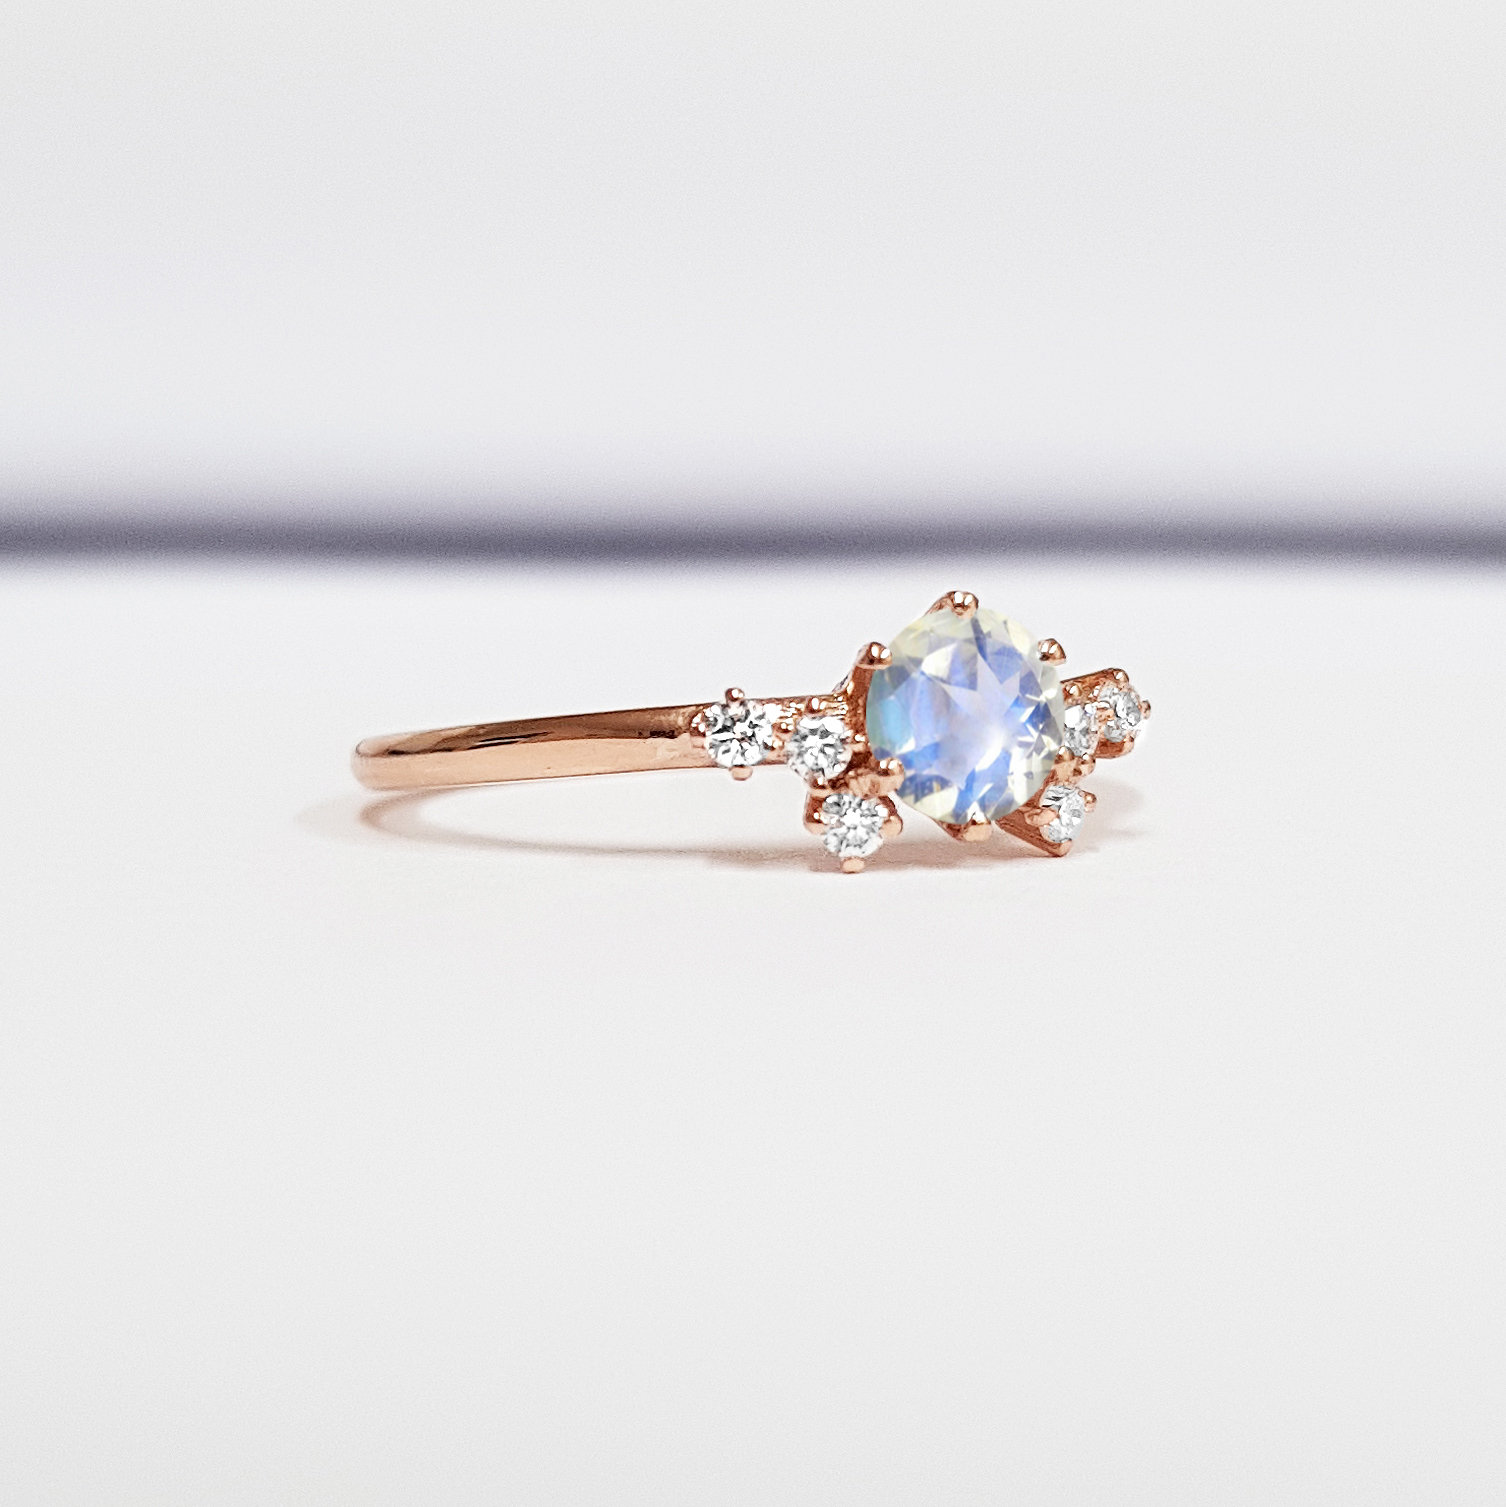 Rose Gold Wedding Ring.Moonstone And Diamond Unique Engagement Ring In White Yellow Rose Gold Or Platinum Handmade